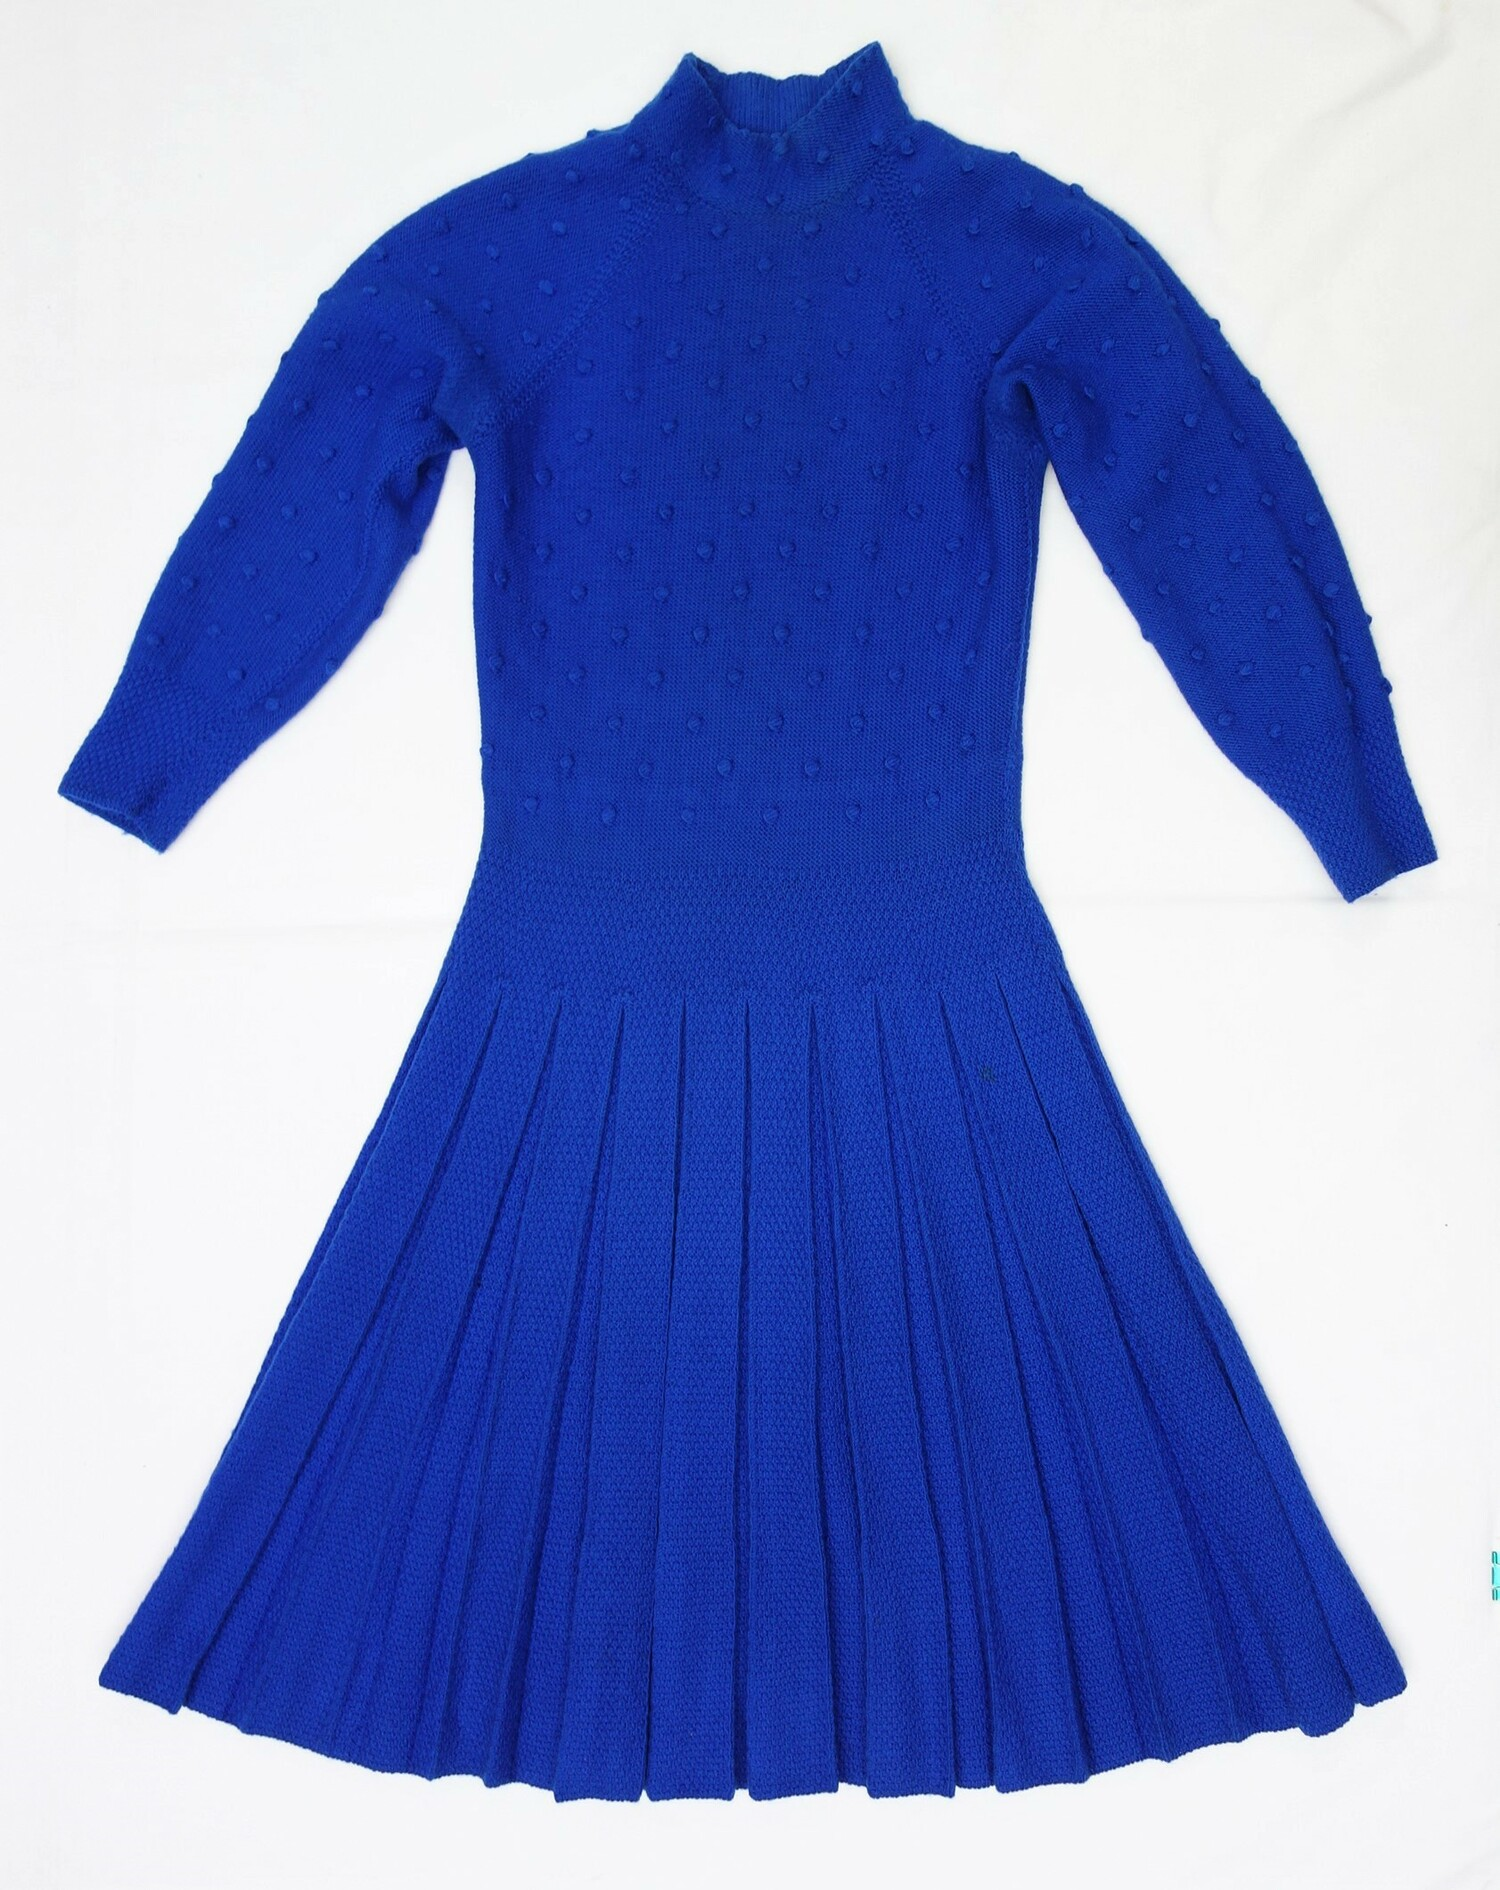 Hand knitted dress, by Eva Radu, Romania, c. 1970s (TRC 2020.0336a).